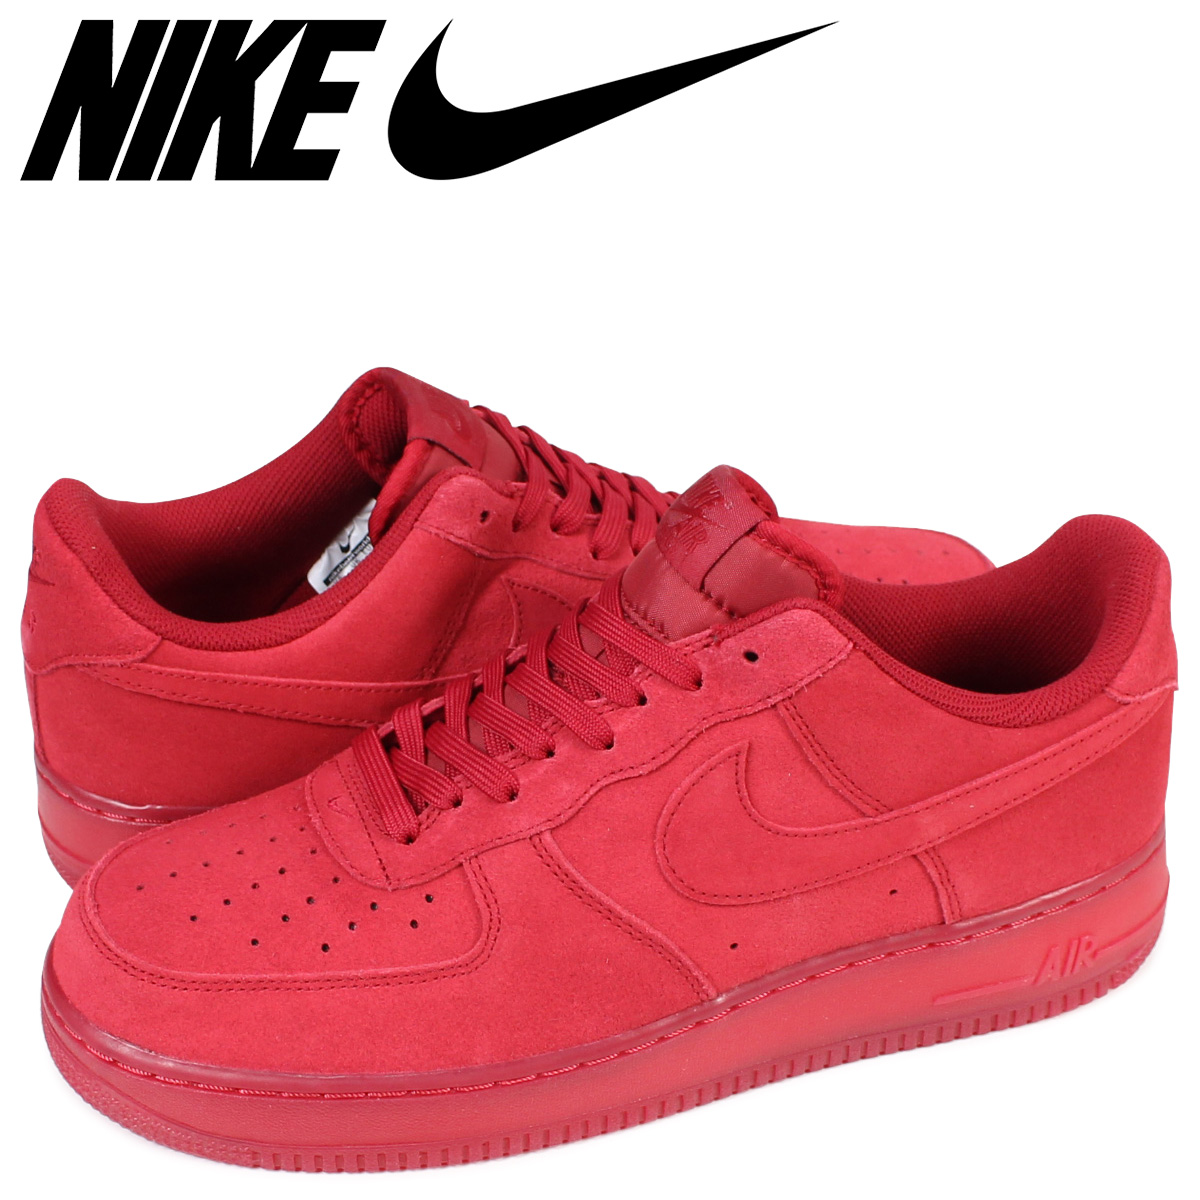 premium selection 9dcc4 0b01f NIKE AIR FORCE 1 07 LV8 RED SUEDE Nike air force 1 sneakers 718,152-601 ...